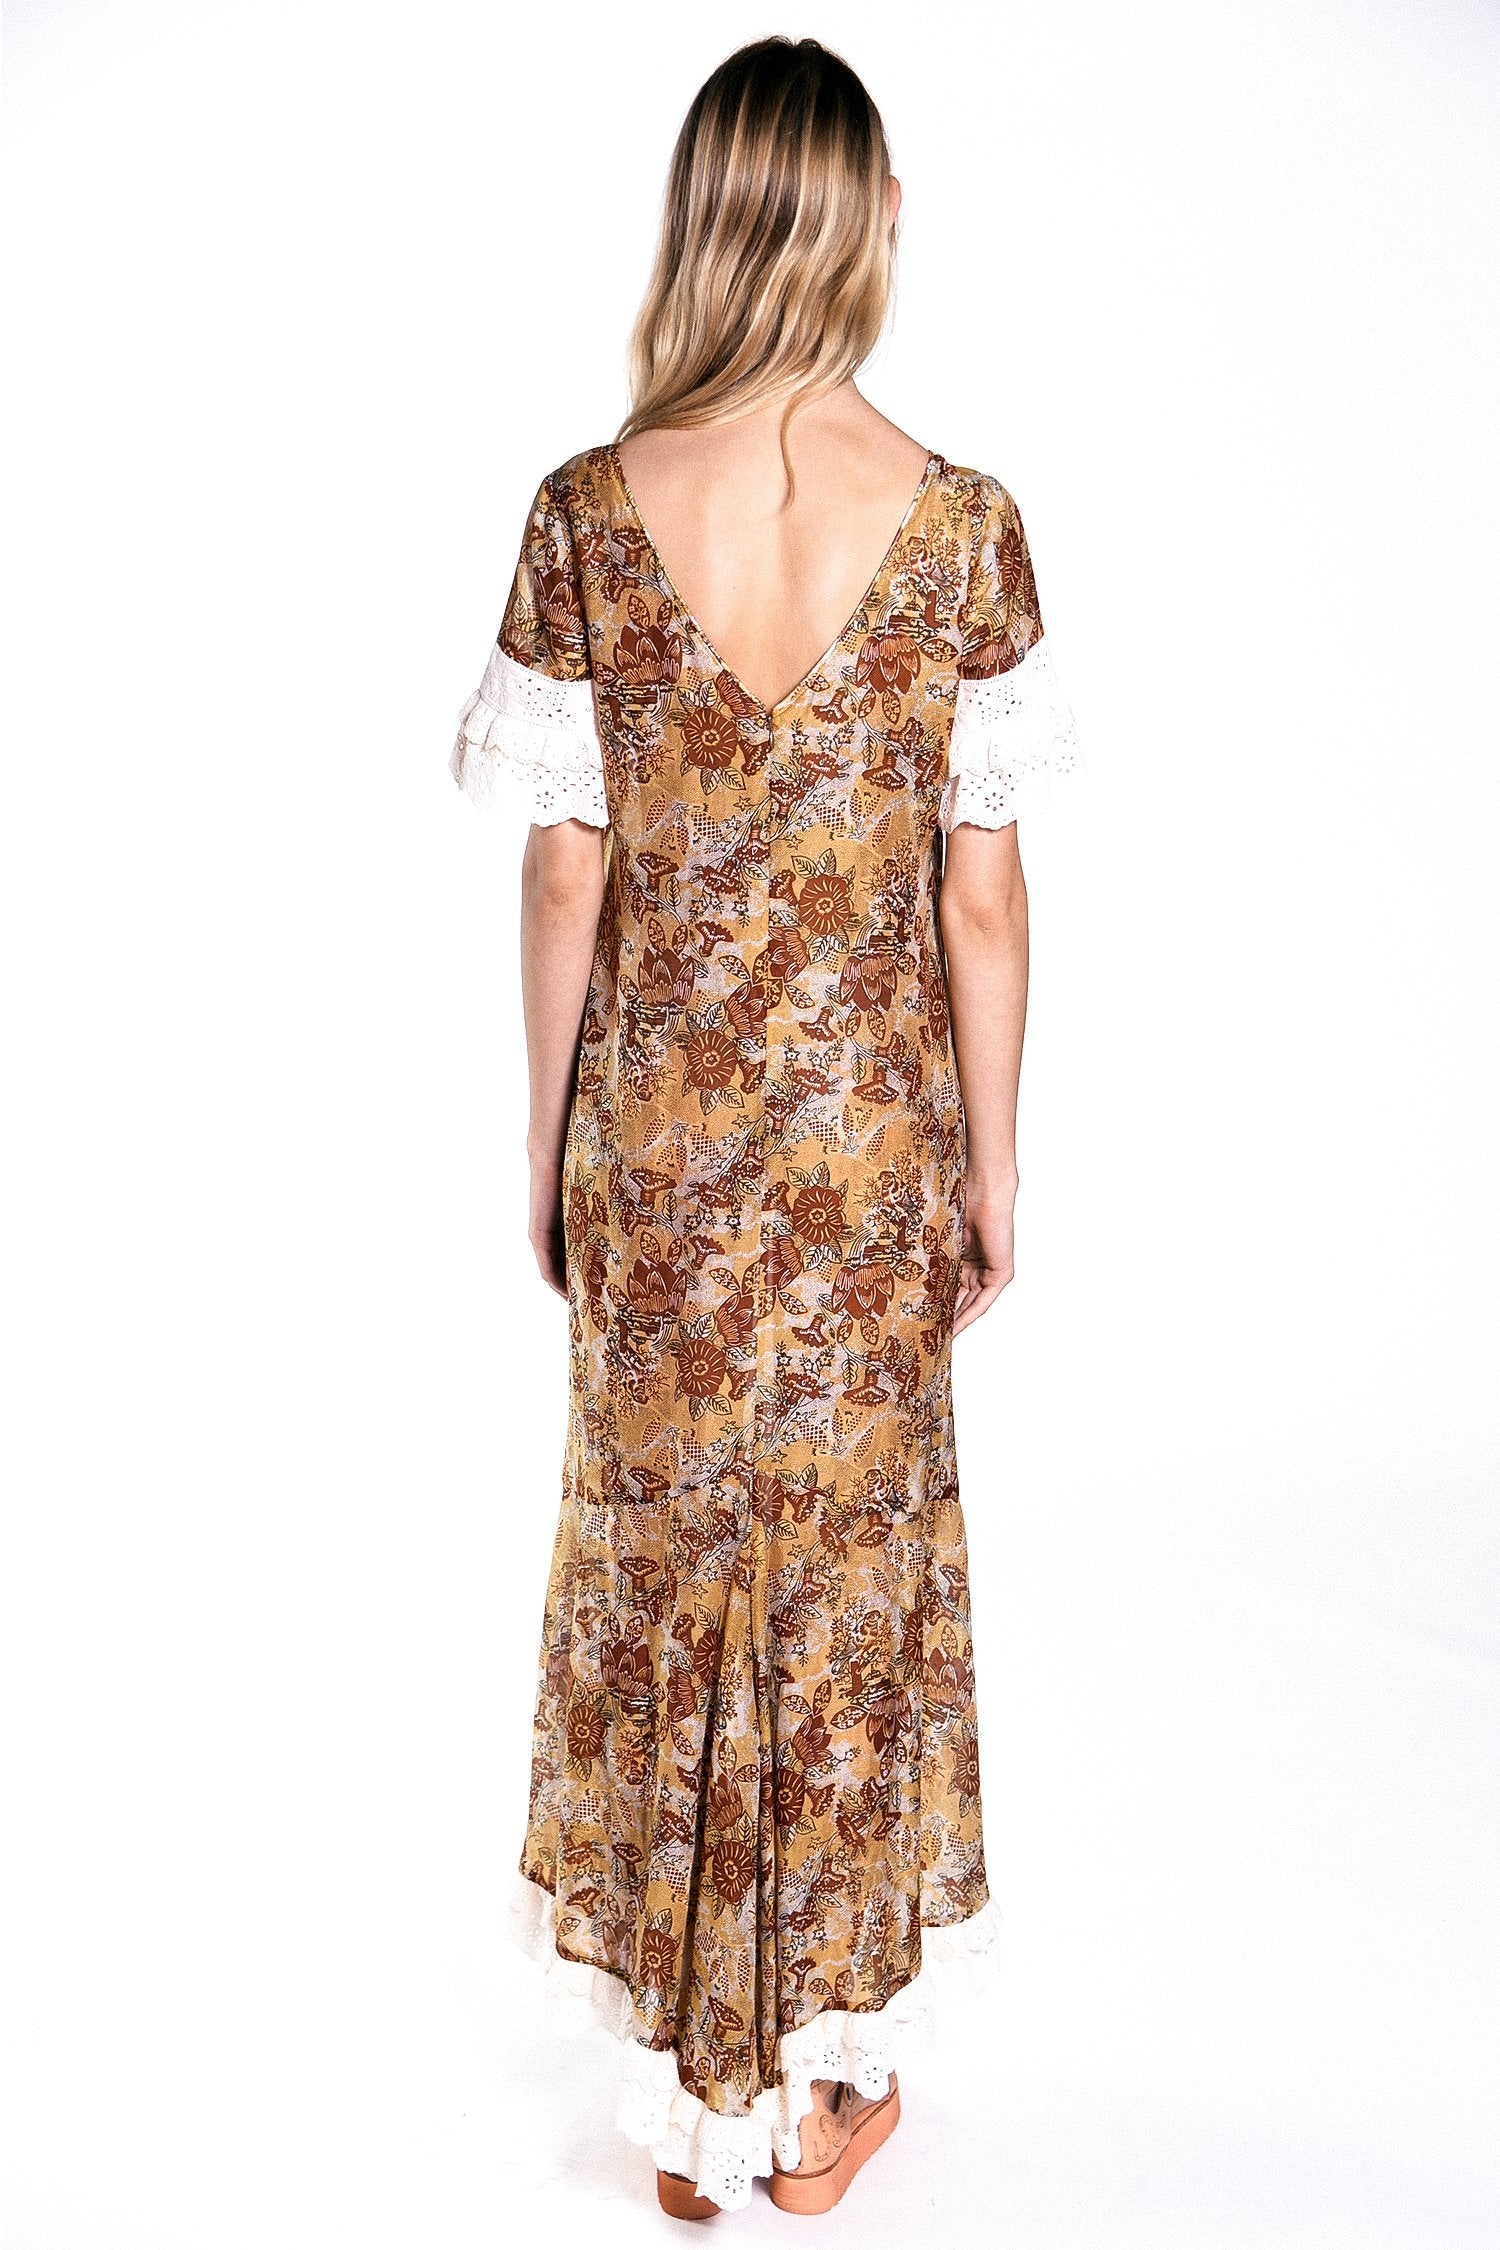 Nightingale Cotton Voile Dress - Anna Sui